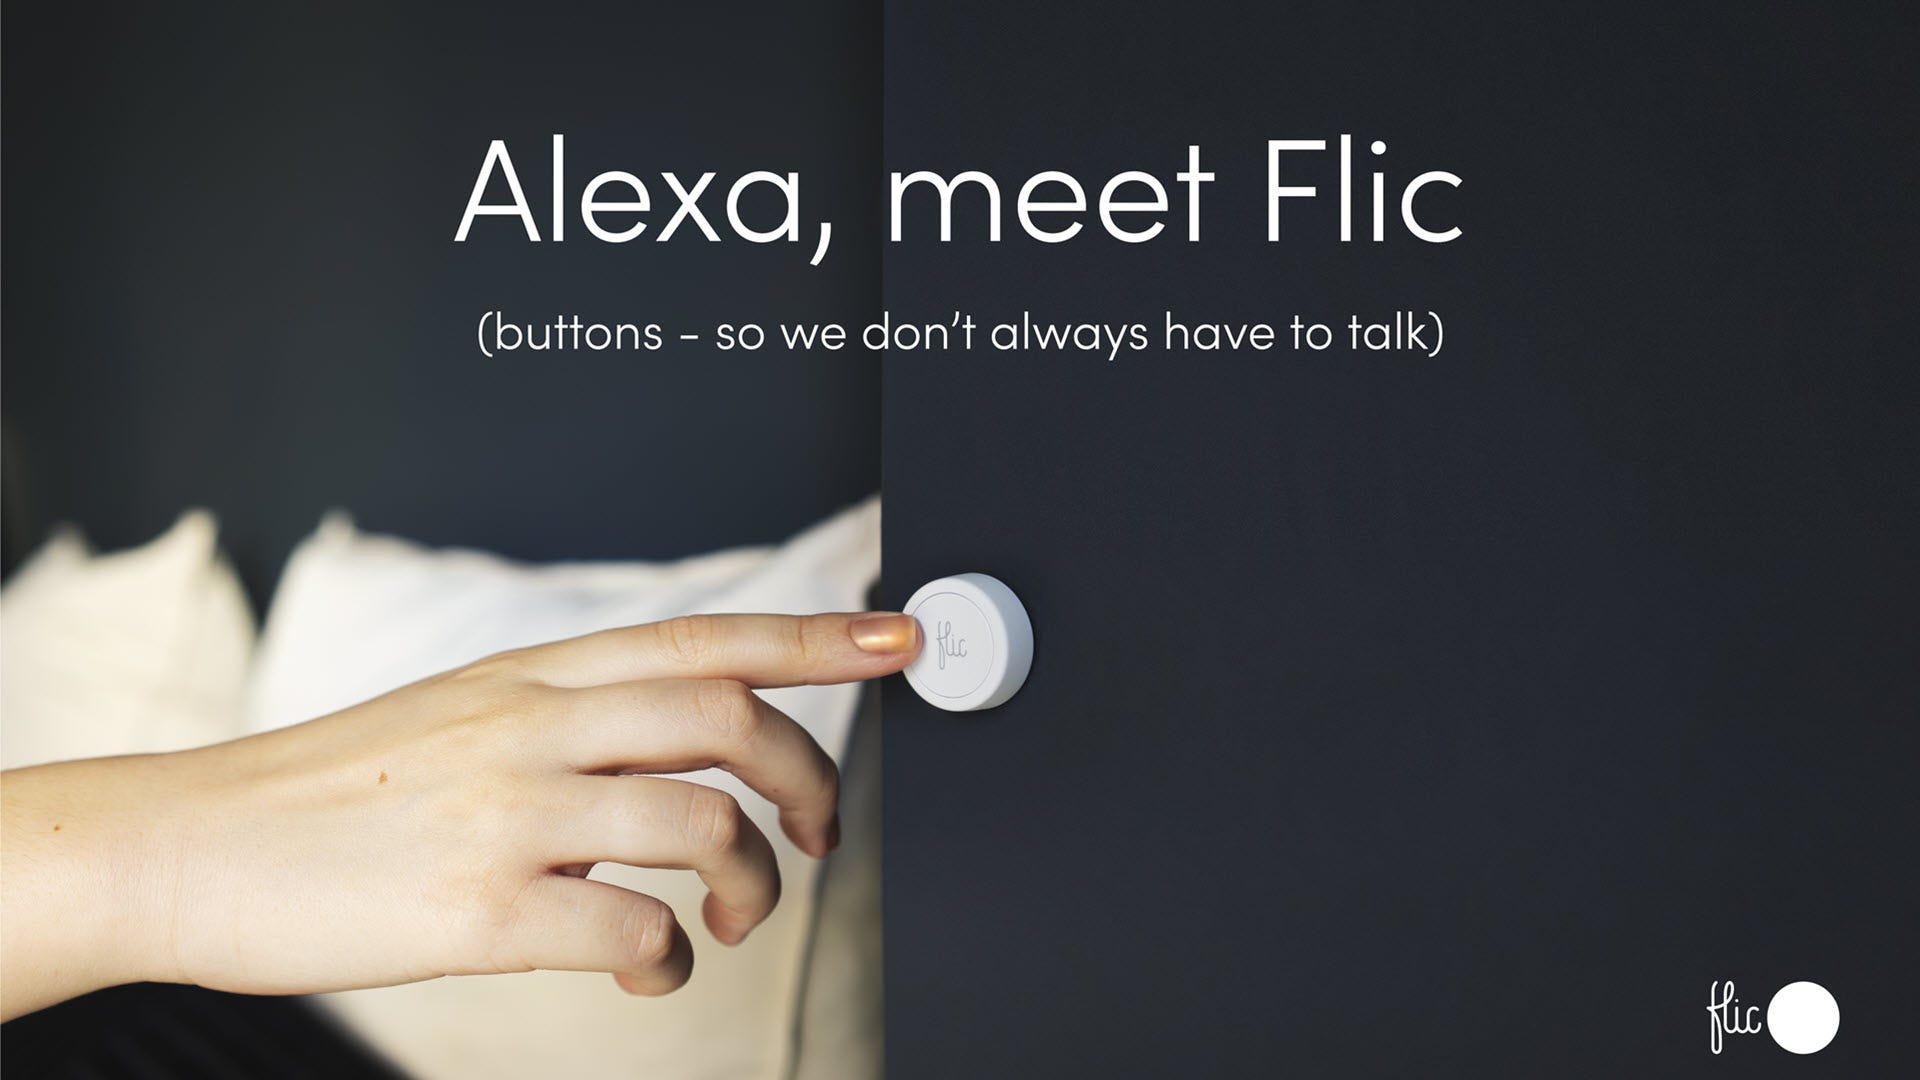 The Flic Smart Button is Now a Replacement for Echo Buttons in Smart Homes